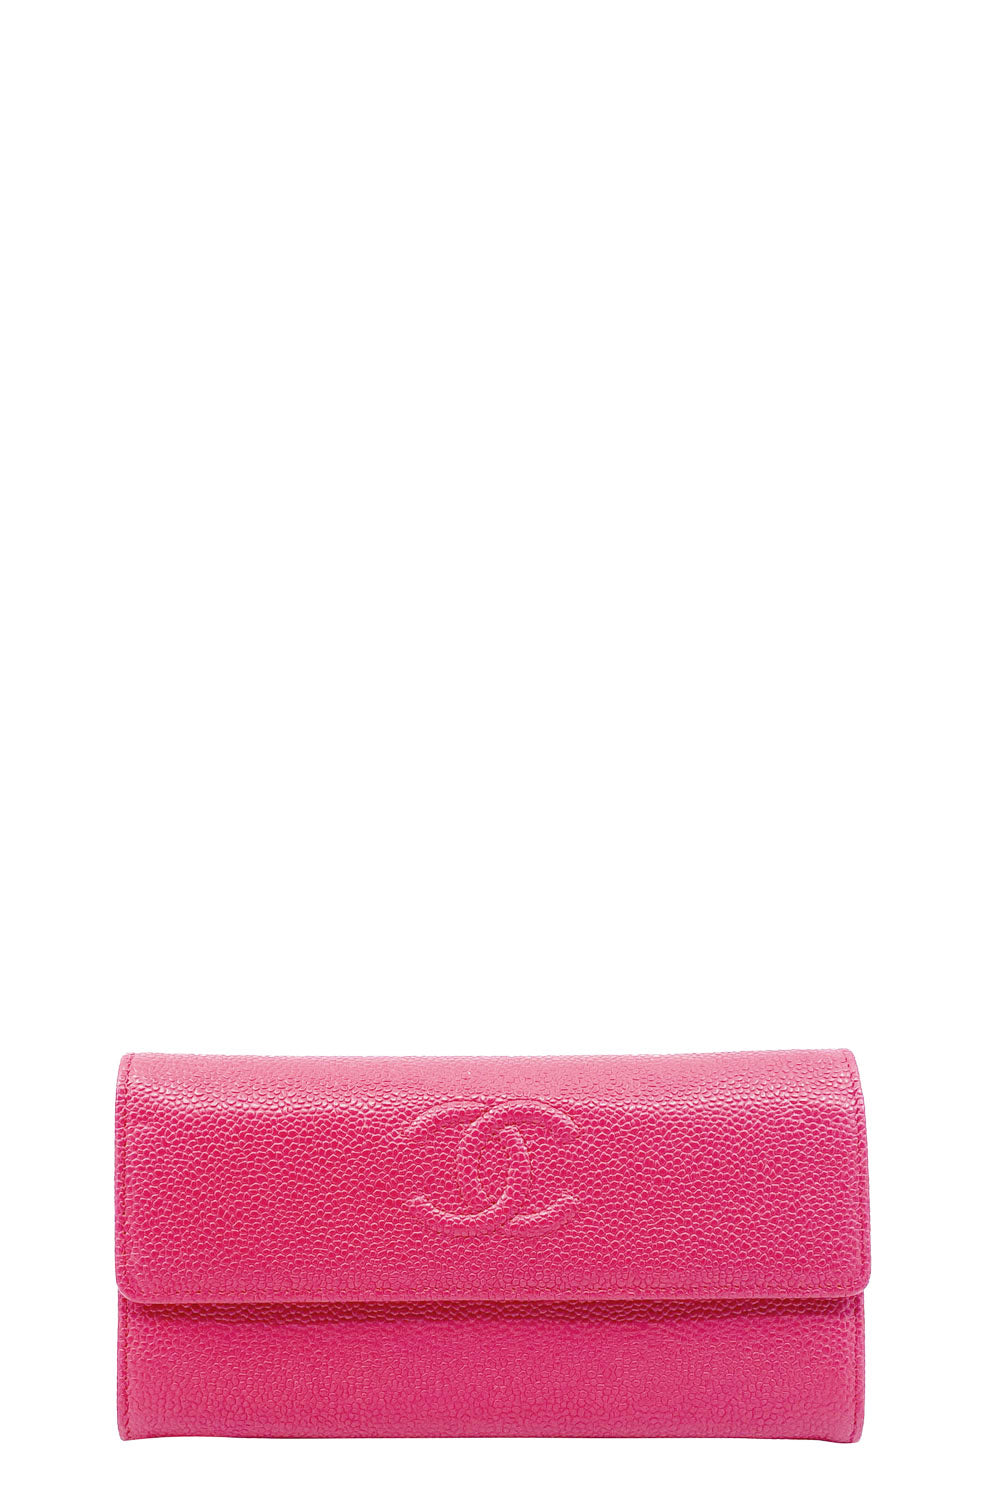 CHANEL CC Continental Wallet Caviar Leather